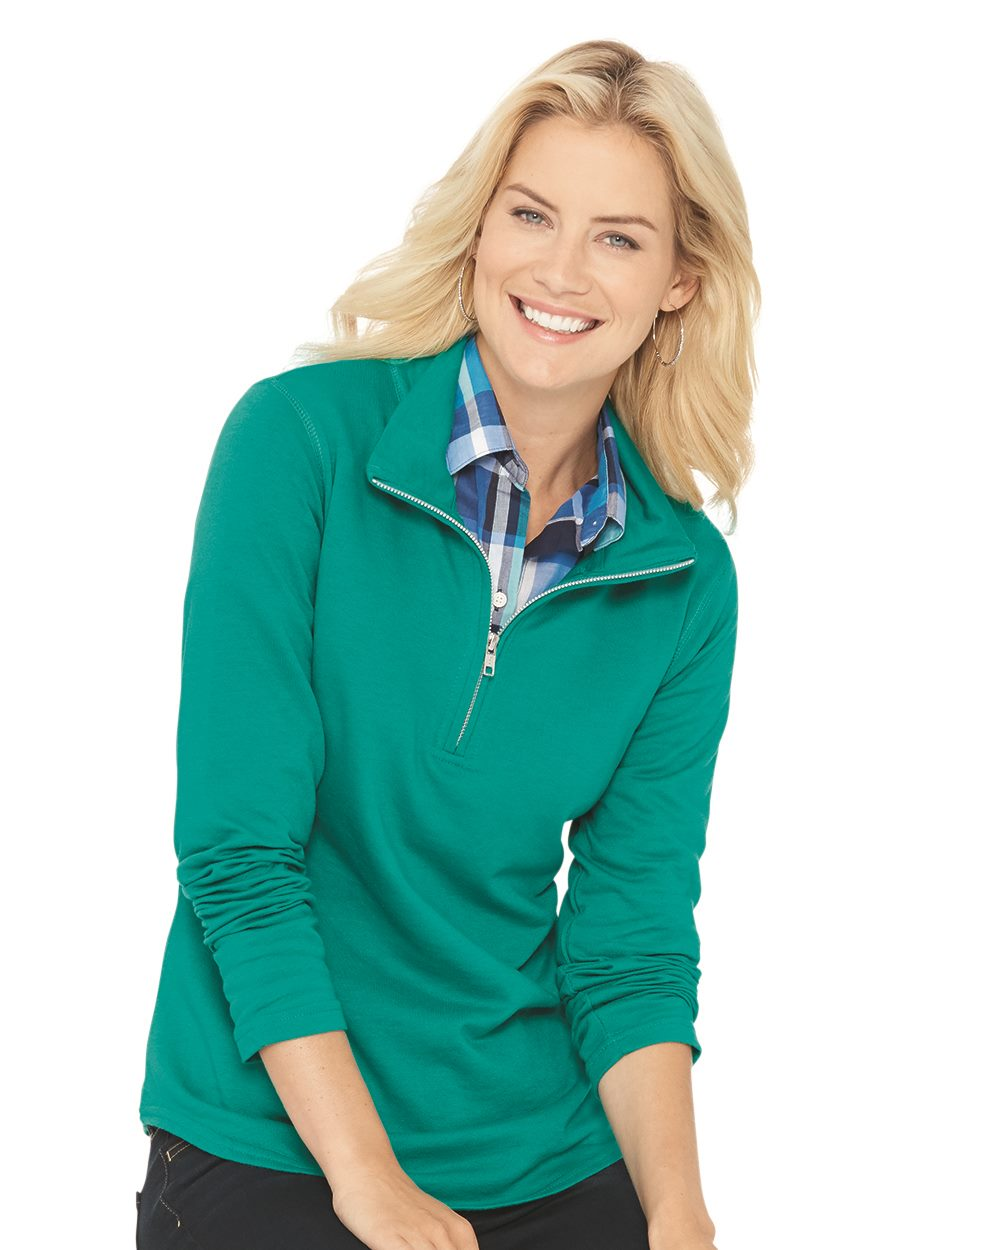 LAT 3764 - Women s Quarter Zip French Terry Pullover - Friendly ... 690f41d37